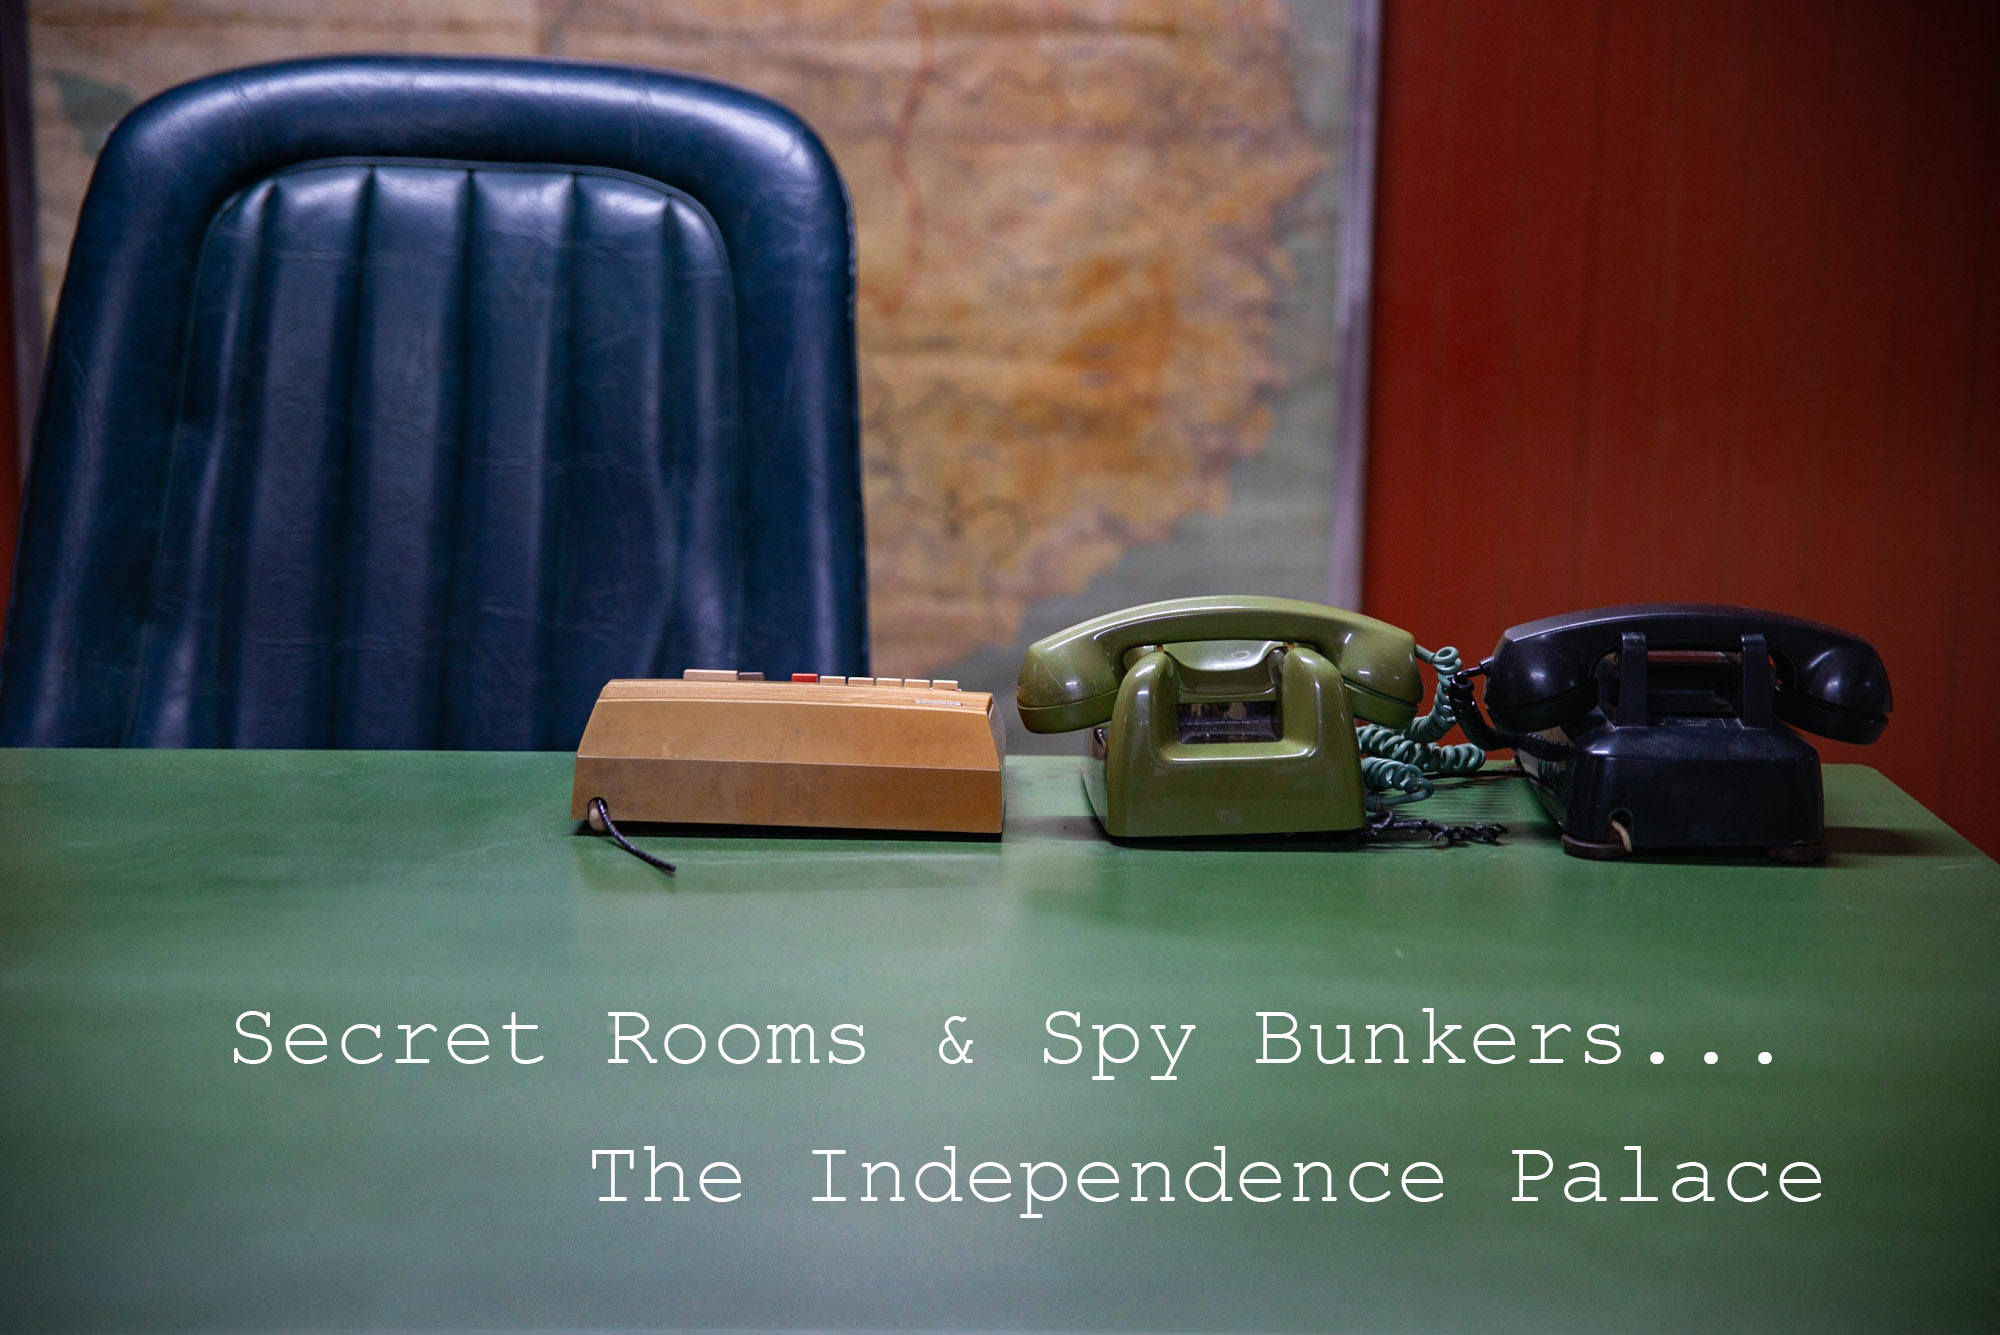 Secret rooms and spy bunkers at Ho Chi Minh City's Independence Palace.